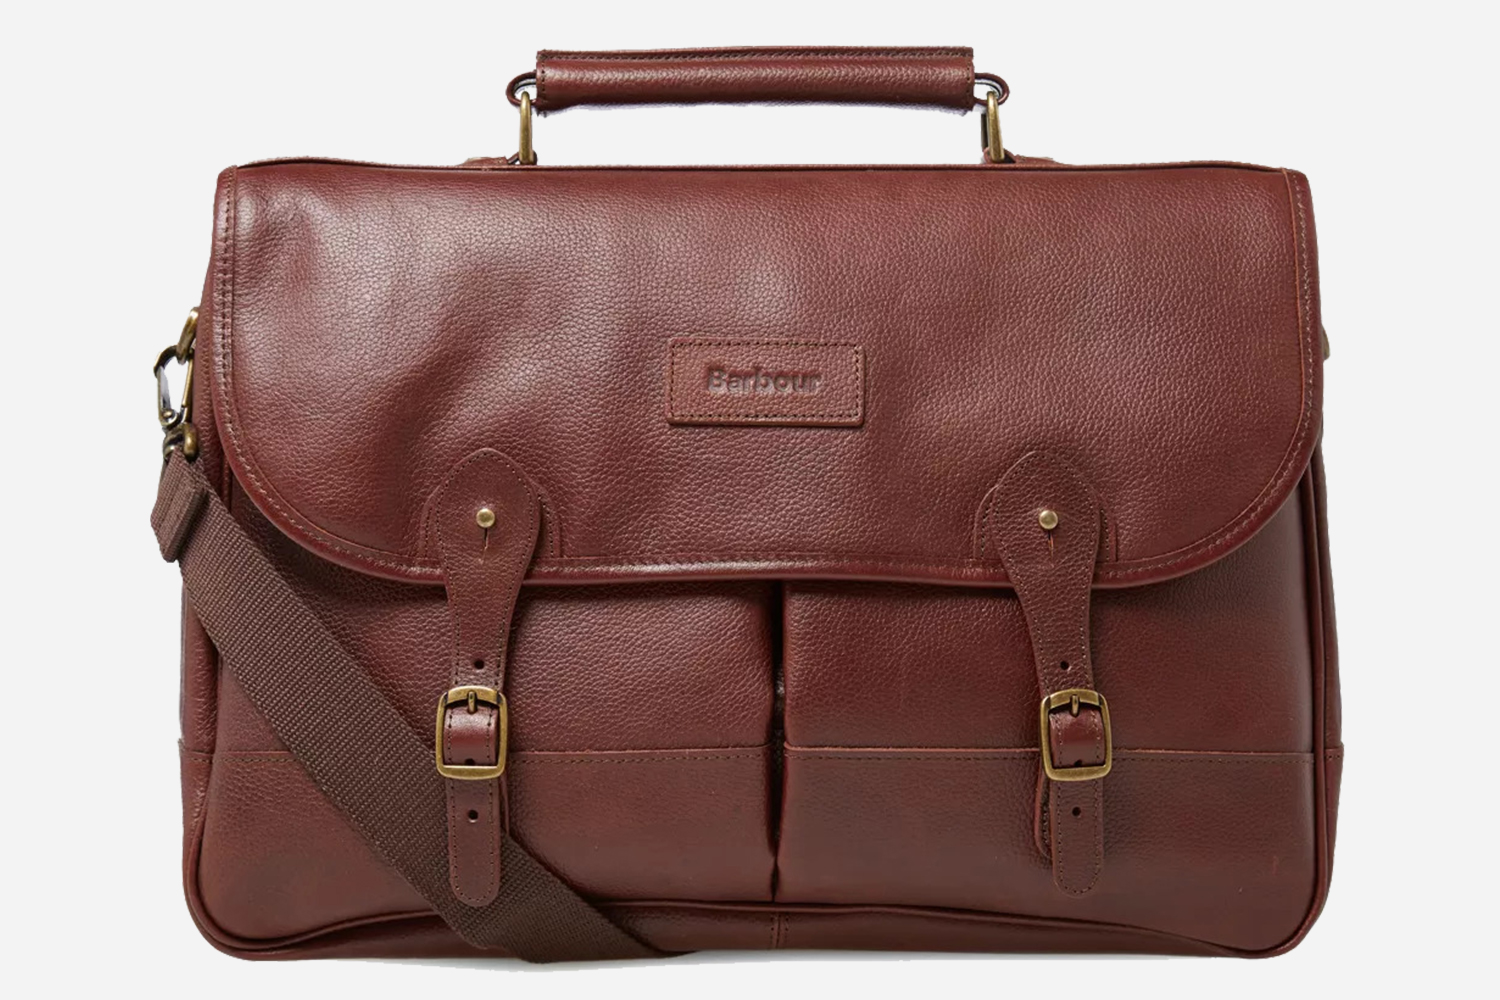 Barbour Discount on Brown Leather Briefcases